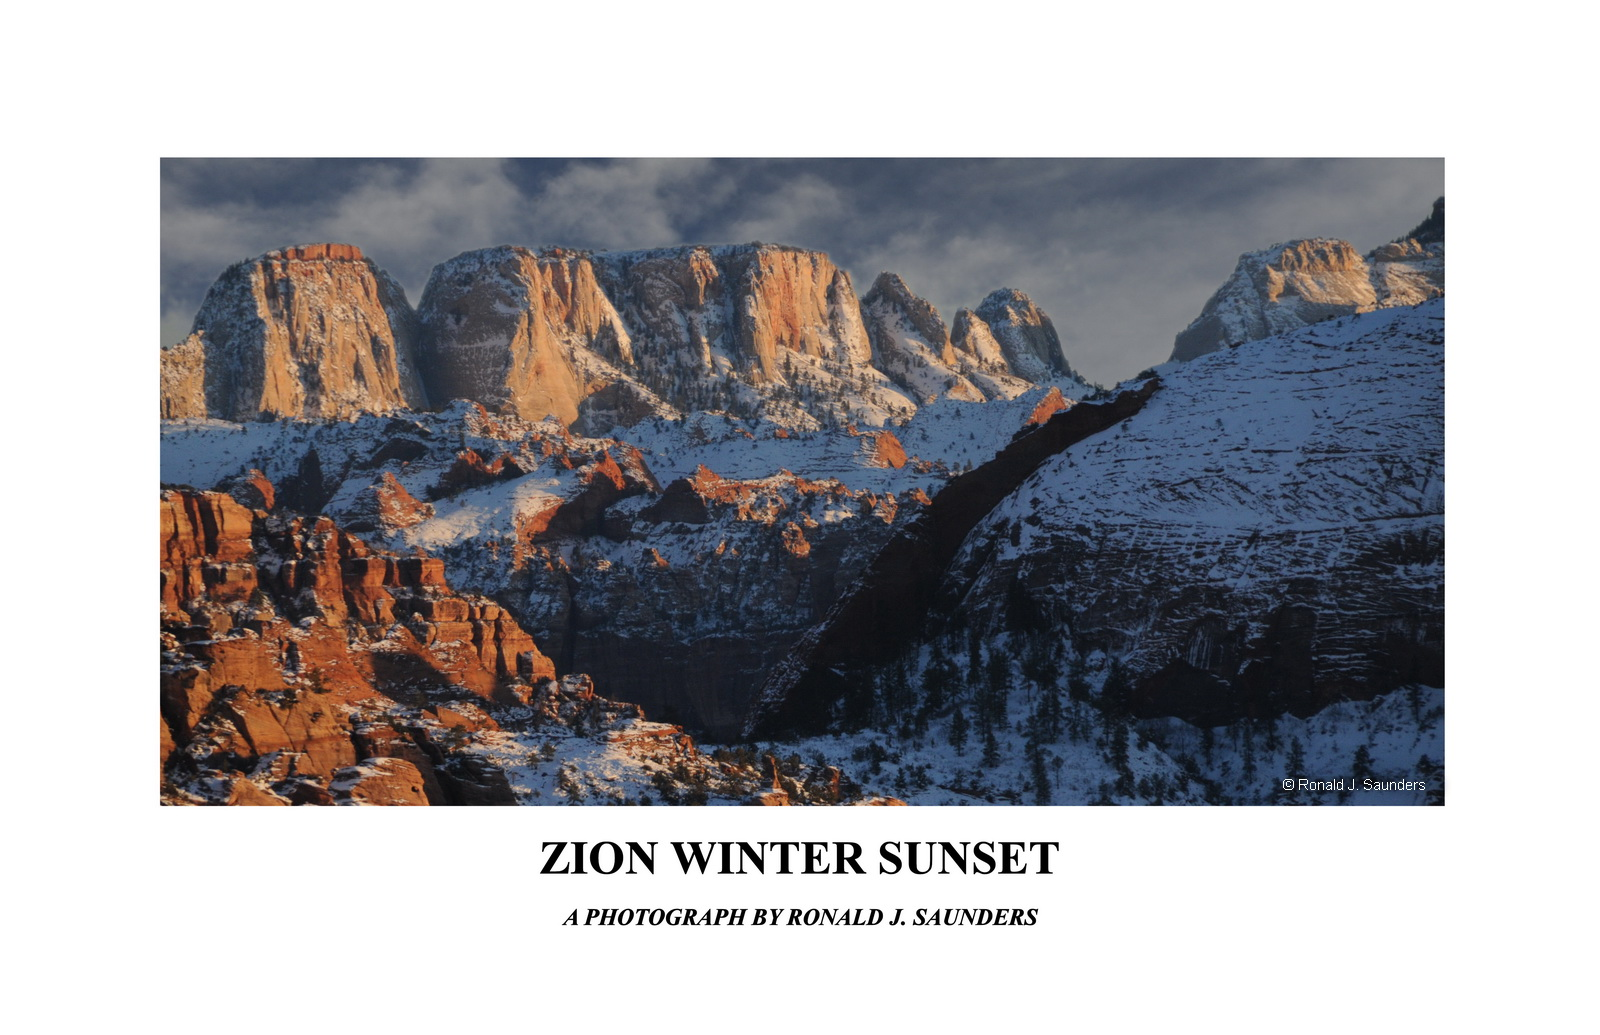 poster, zion, color, landscape, photo